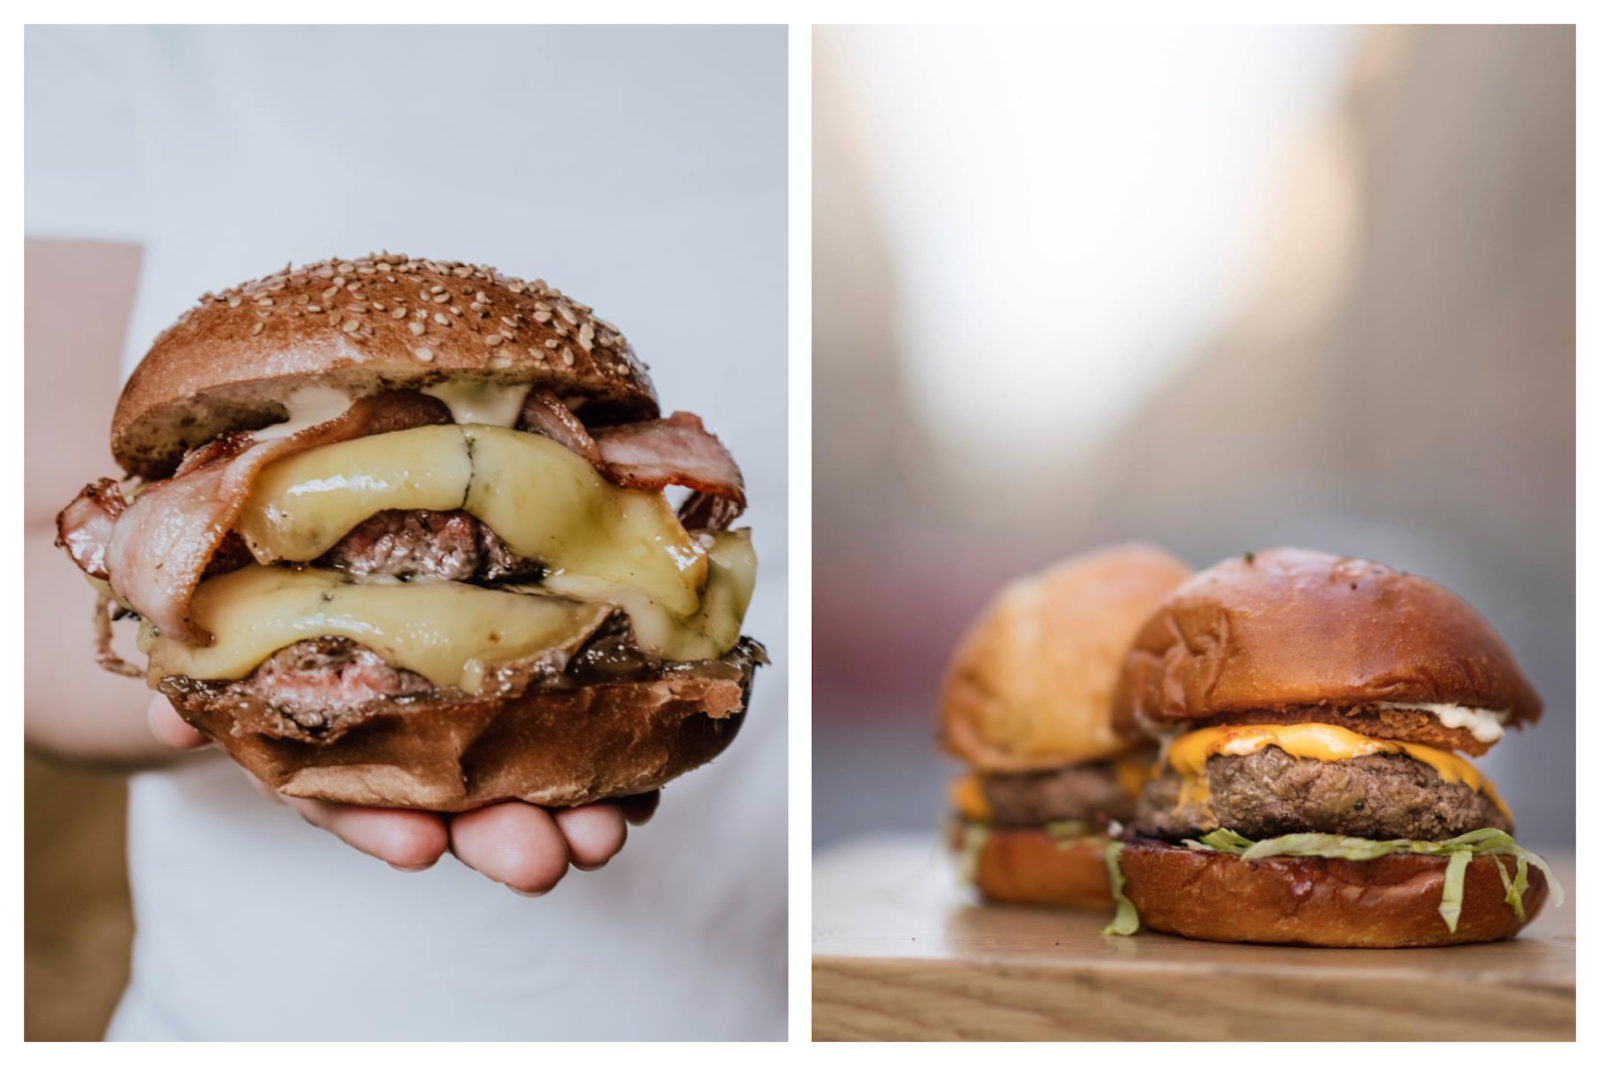 For almost guilt-free burgers in Paris, head to Bio Burger for its juicy, generously filled burgers with melted cheese and bacon (left), or Blend, which does tasty cheese burgers like these two sitting on a wooden table, in several locations all over Paris (right).